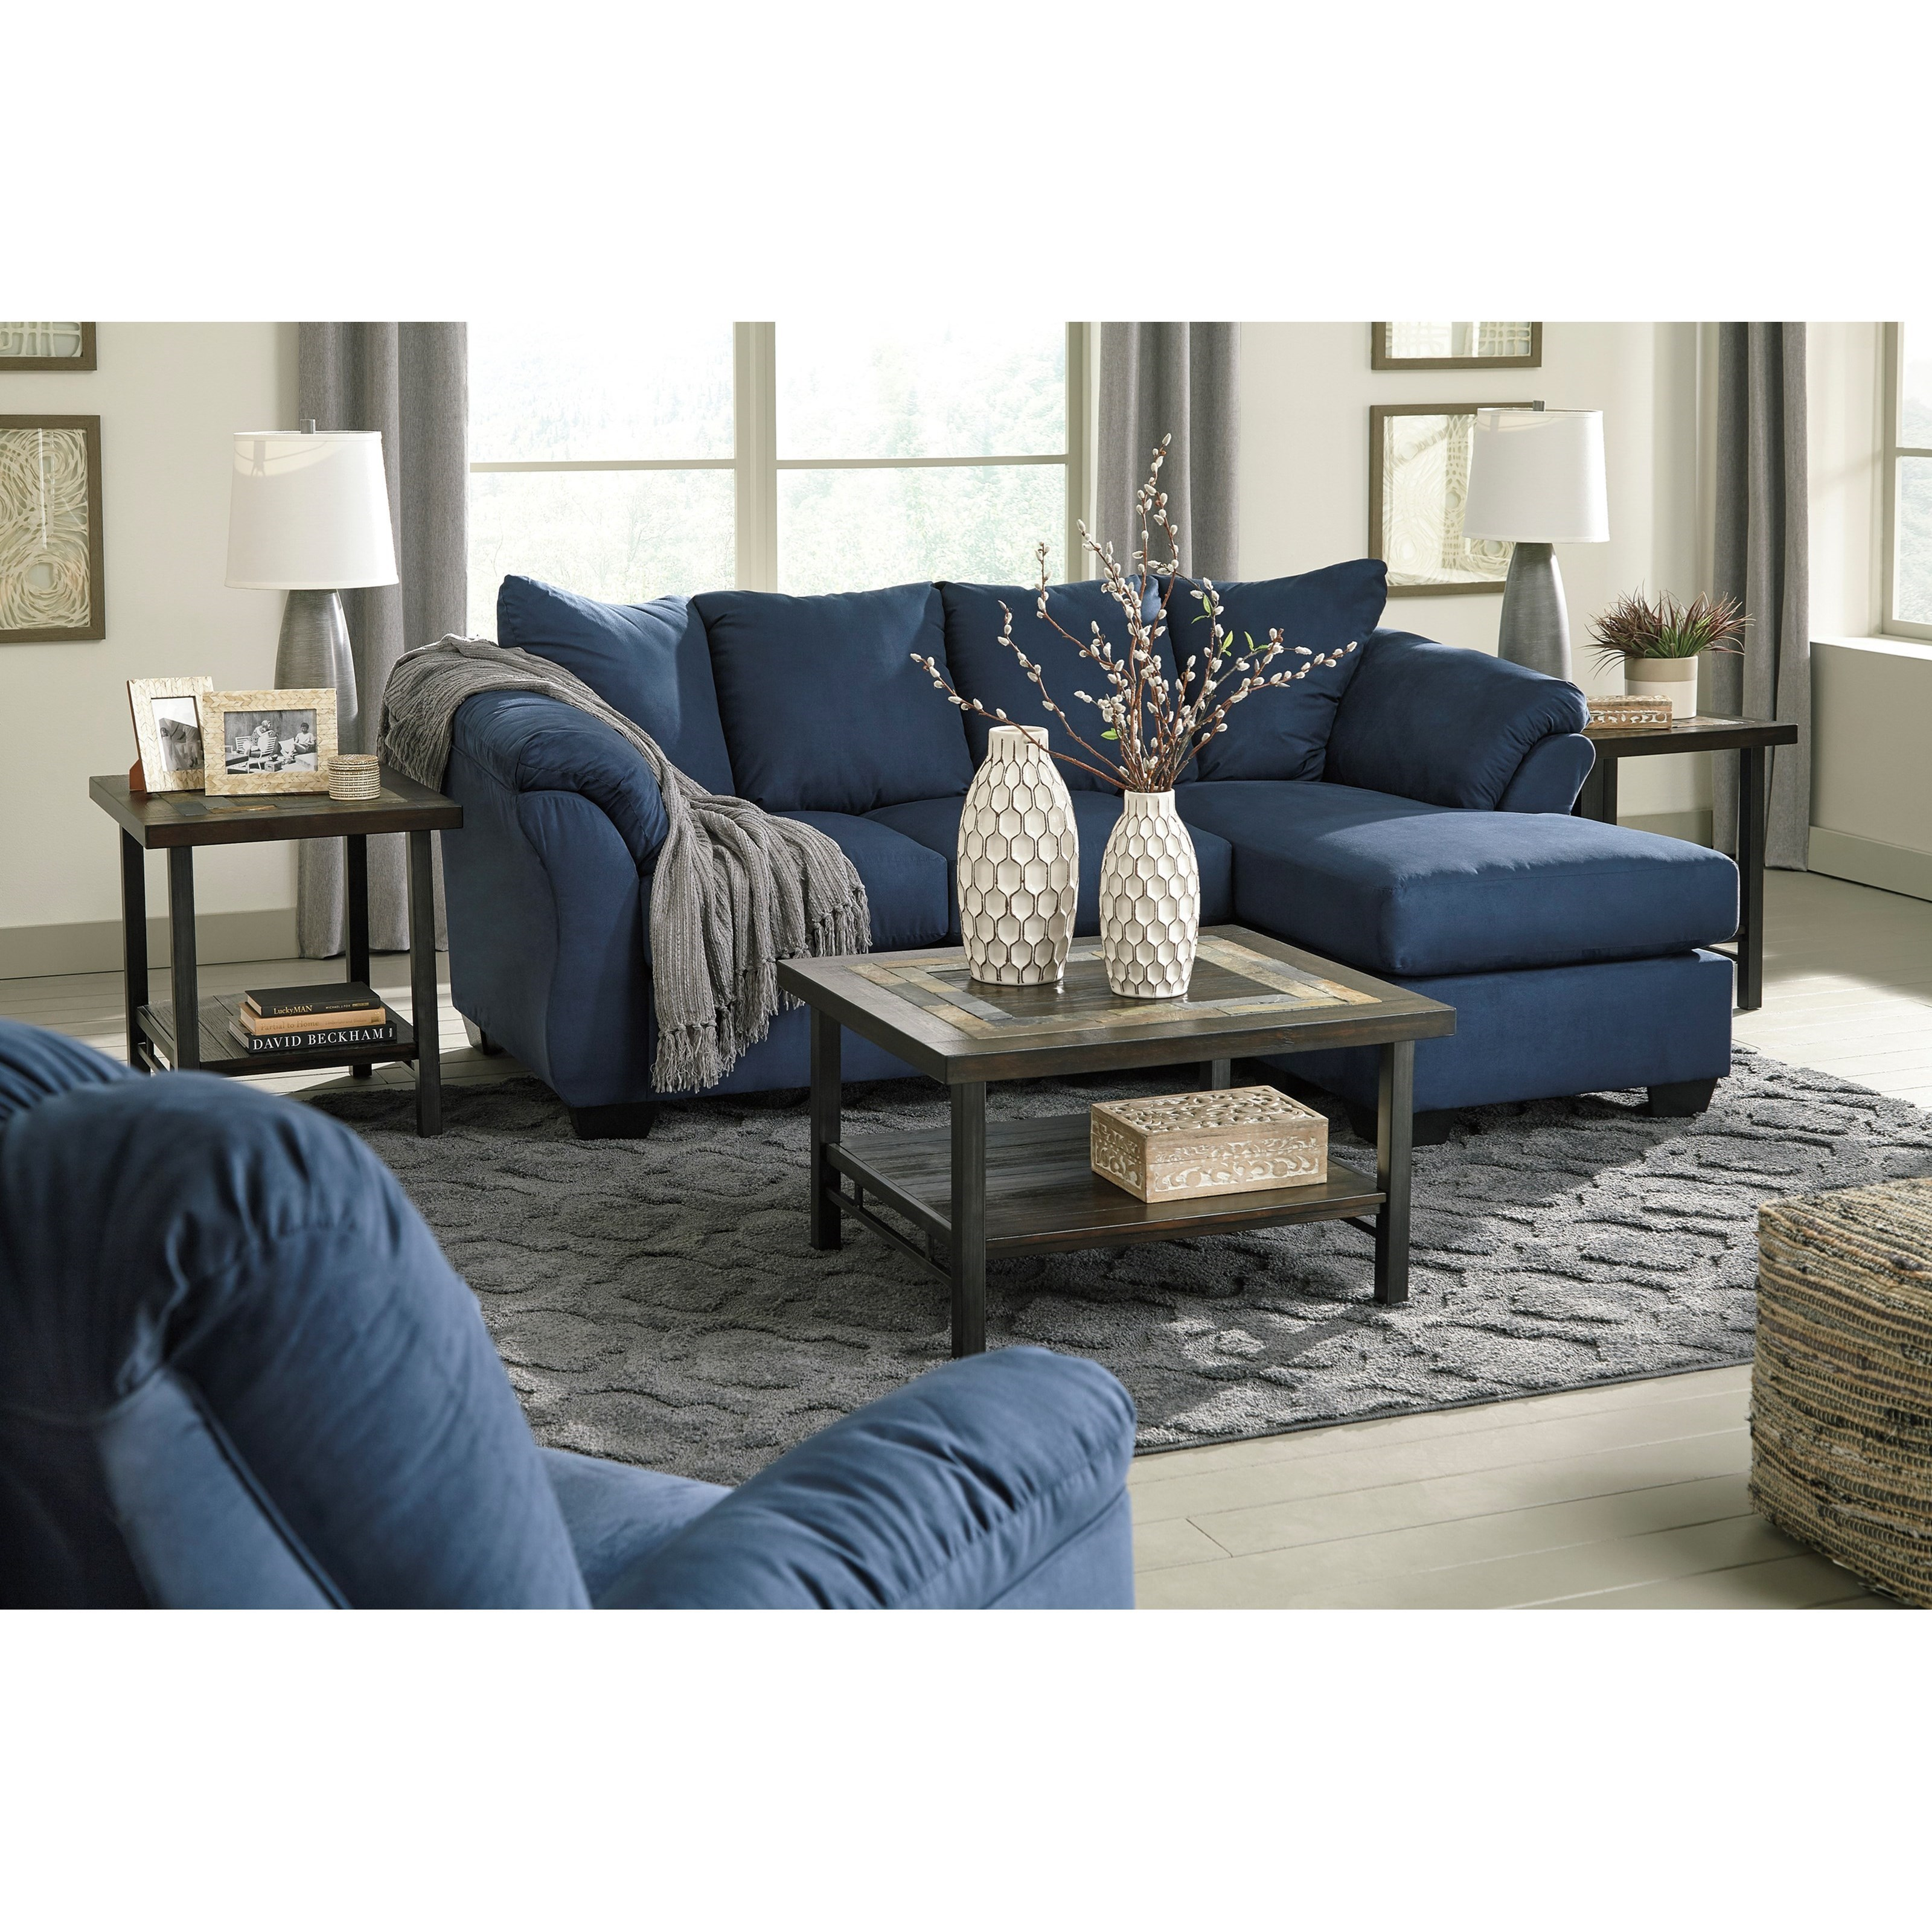 Signature Design By Ashley Darcy   BlueStationary Living Room Group